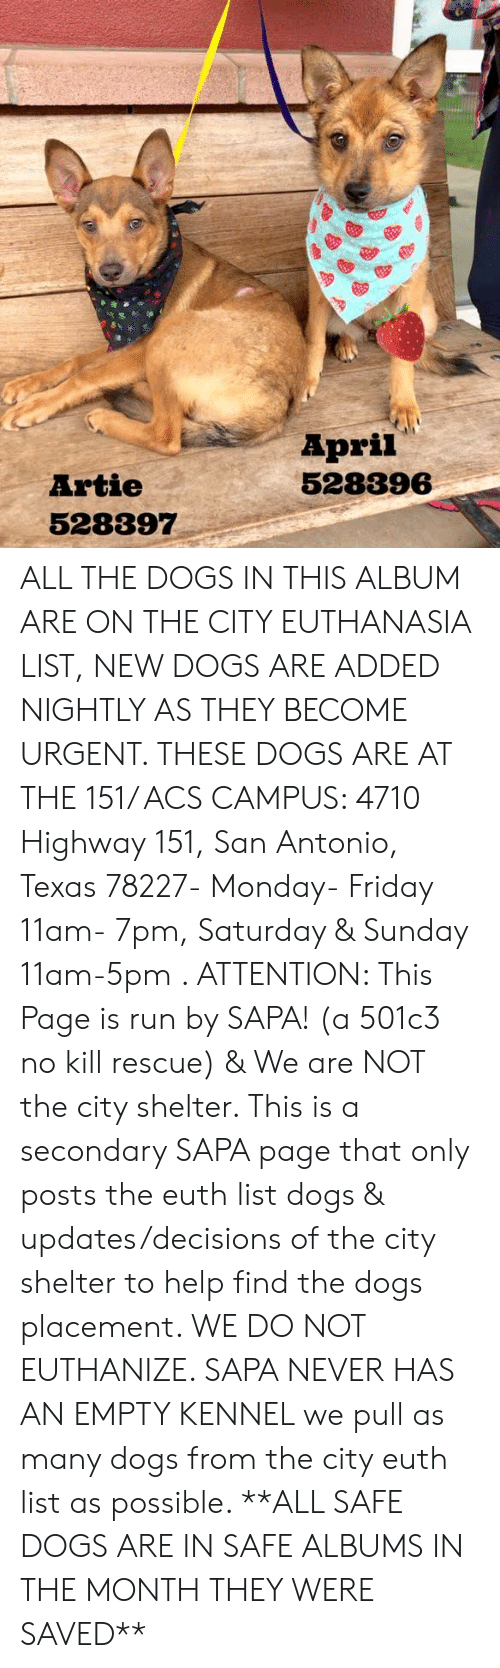 Dogs, Friday, and Memes: April  528396  Artie  528397 ALL THE DOGS IN THIS ALBUM ARE ON THE CITY EUTHANASIA LIST, NEW DOGS ARE ADDED NIGHTLY AS THEY BECOME URGENT.  THESE DOGS ARE AT THE 151/ ACS CAMPUS: 4710 Highway 151, San Antonio, Texas 78227- Monday- Friday 11am- 7pm, Saturday & Sunday 11am-5pm  .                                                                                                                                                                                                                                                     ATTENTION: This Page is run by SAPA! (a 501c3 no kill rescue) & We are NOT the city shelter. This is a secondary SAPA page that only posts the euth list dogs & updates/decisions of the city shelter to help find the dogs placement. WE DO NOT EUTHANIZE.  SAPA NEVER HAS AN EMPTY KENNEL we pull as many dogs from the city euth list as possible.      **ALL SAFE DOGS ARE IN SAFE ALBUMS IN THE MONTH THEY WERE SAVED**